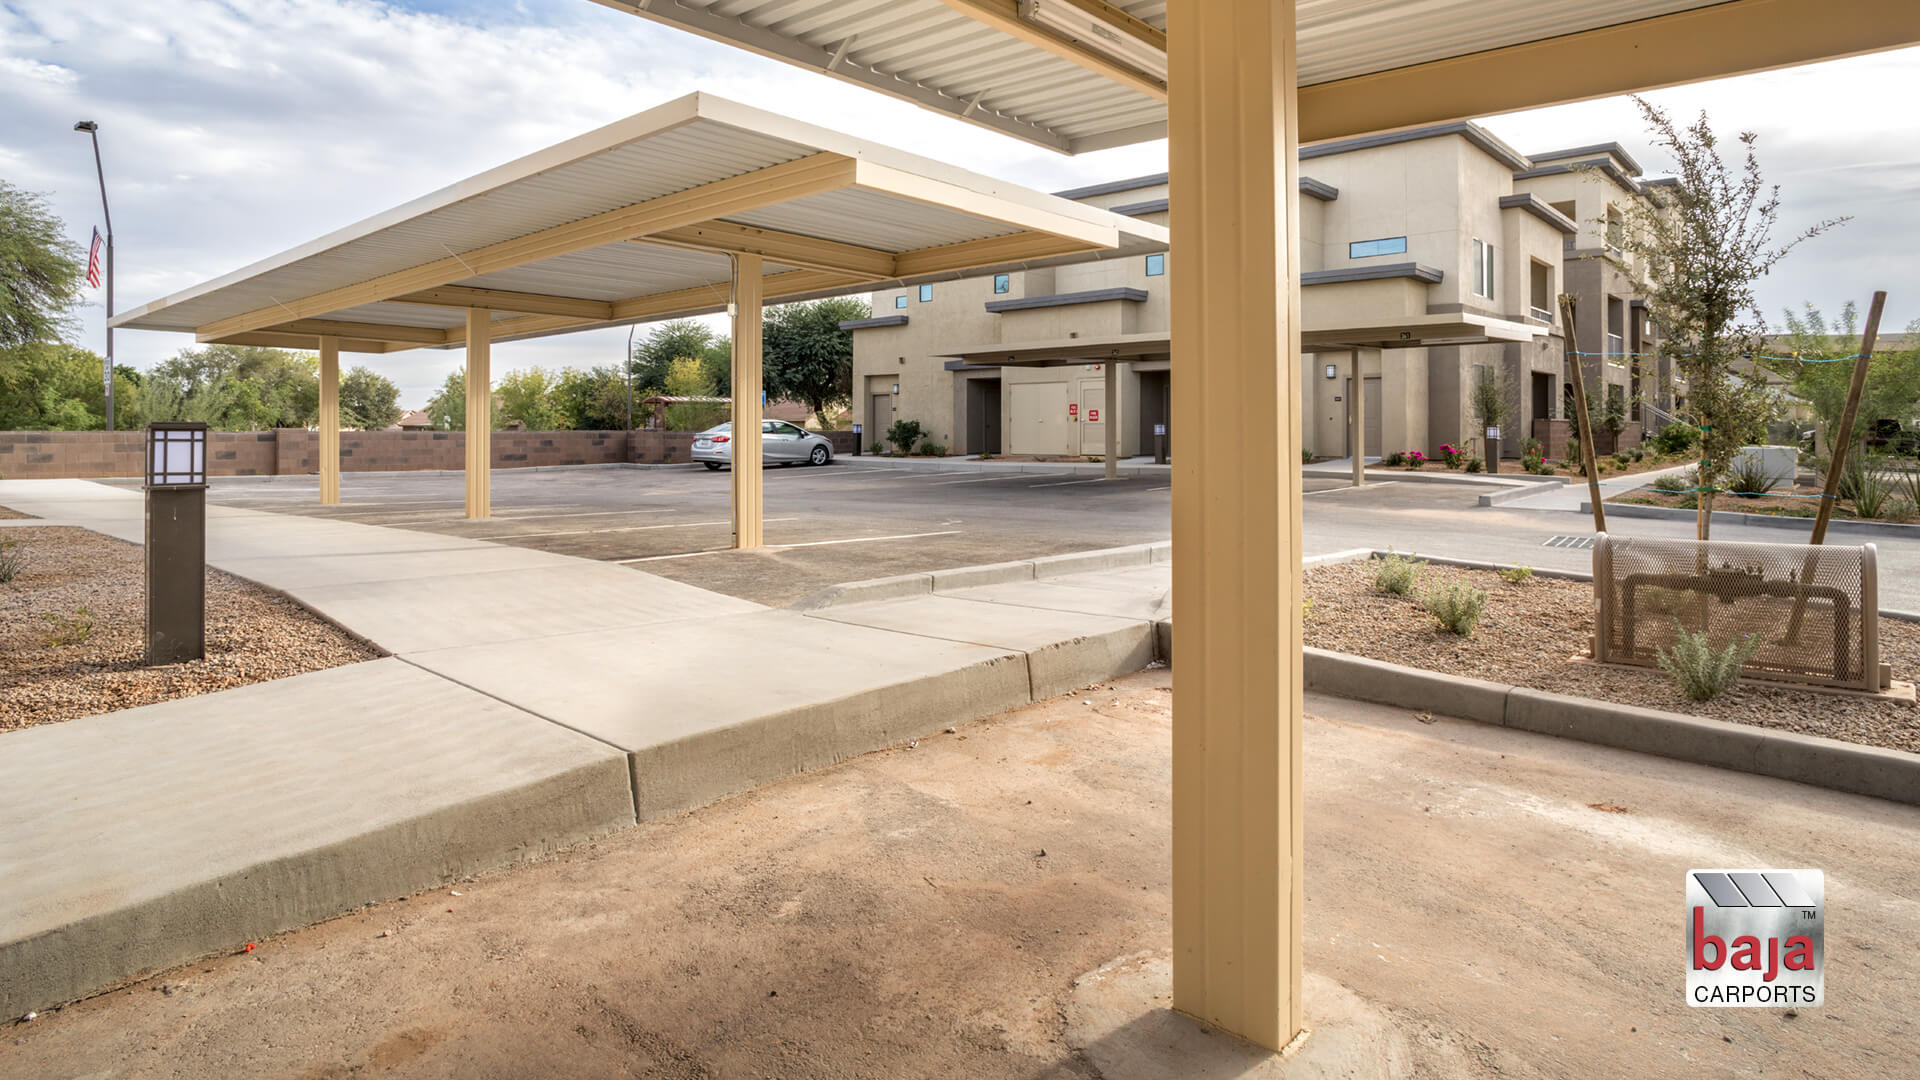 beat the heat with baja carport standard shade canopy like this one in gilbert arizona